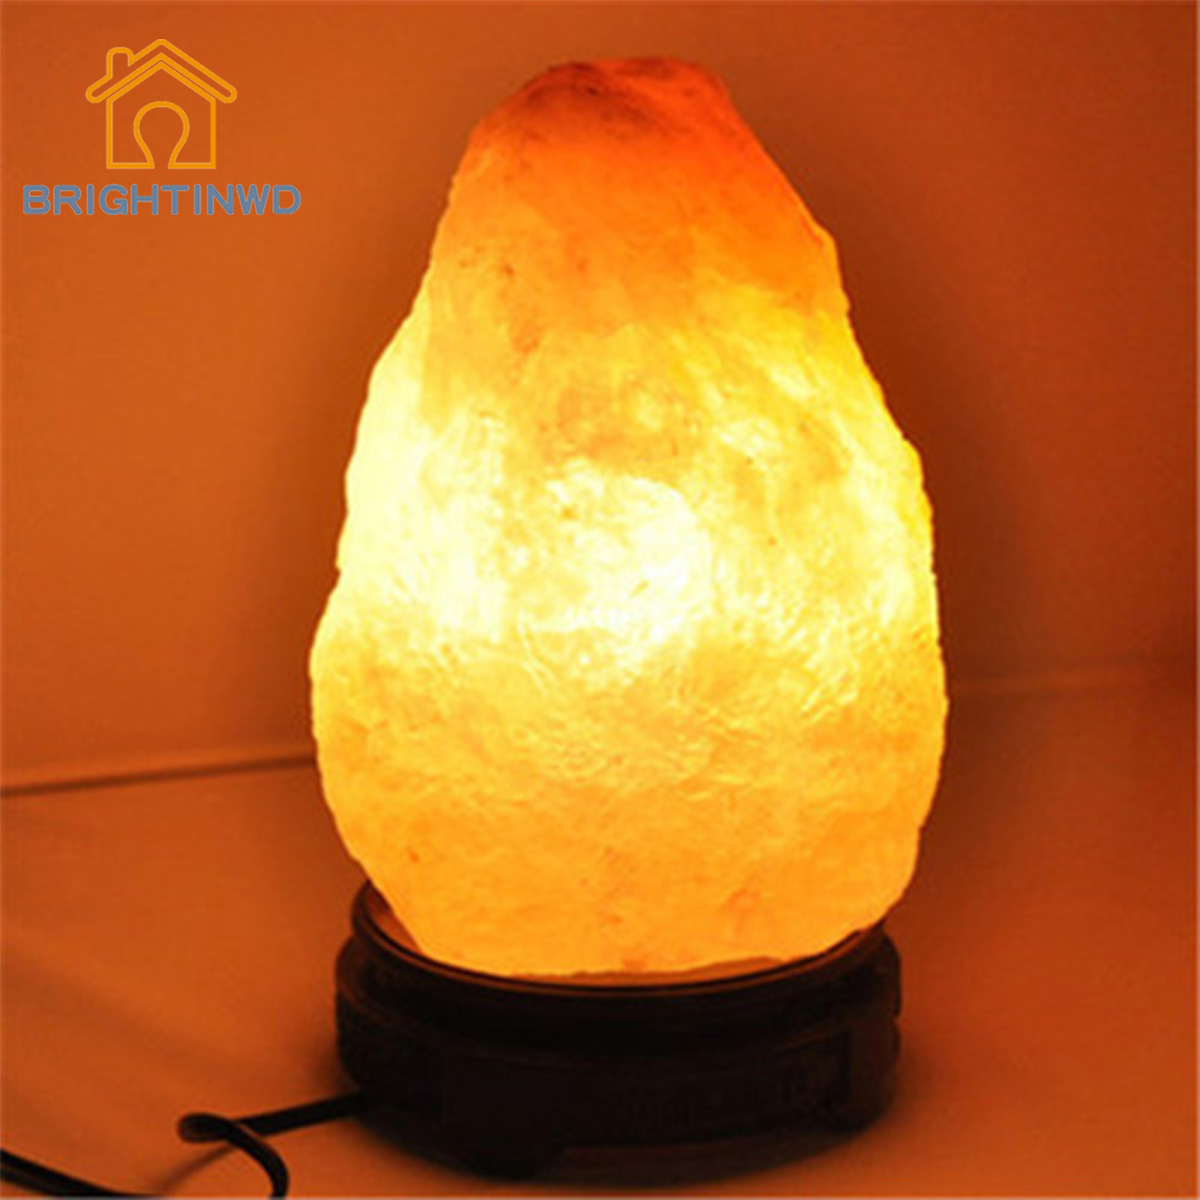 Himalayan Salt Night Light Crystal Salt Lamp Gift Lamp Colorful Ambient Night Light USB BRIGHTINWD